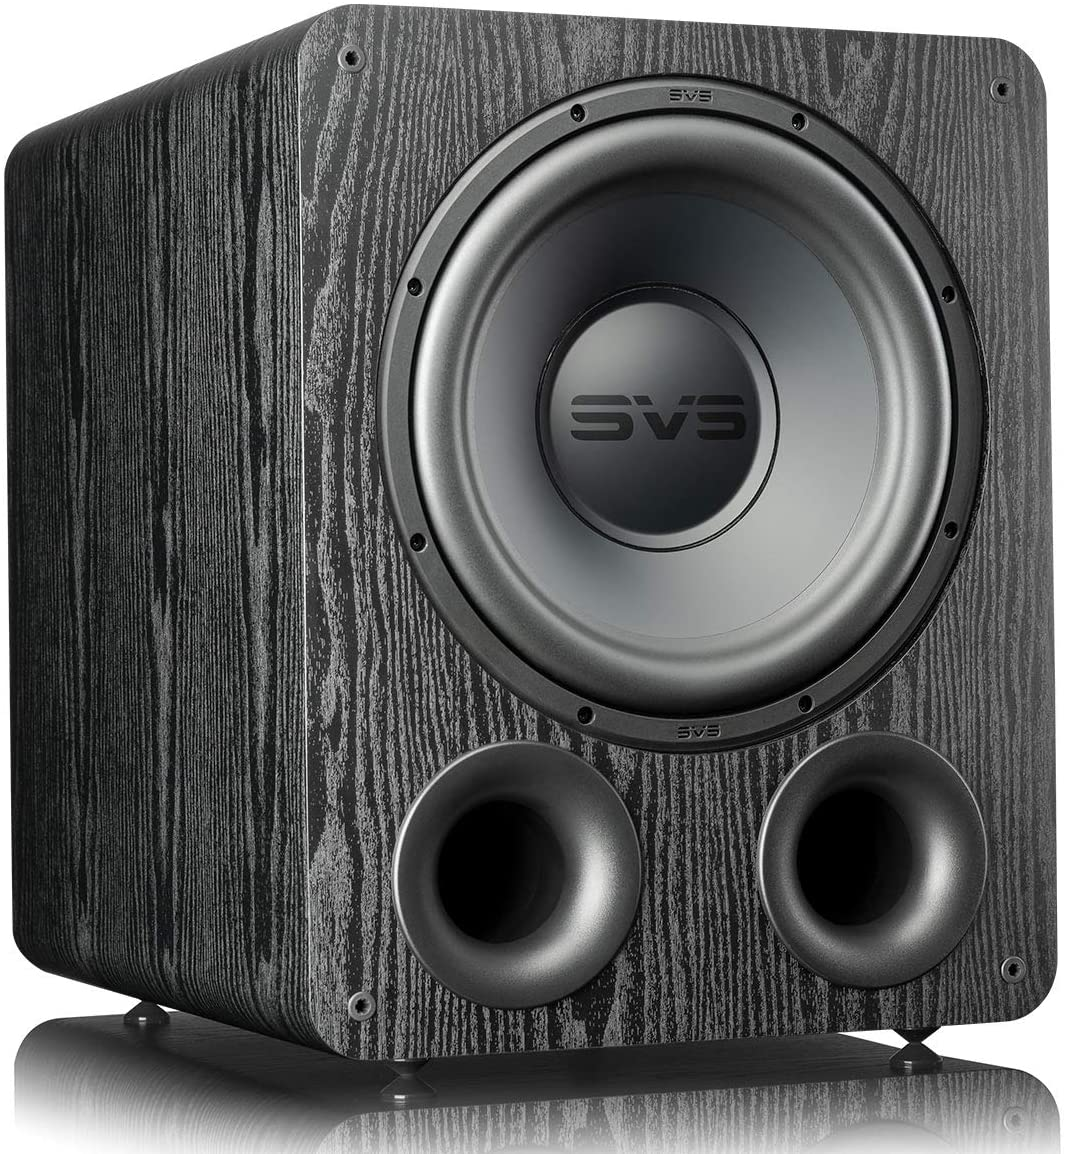 SVS PB-1000 Pro Subwoofer (Black Ash) | 12-in Driver, 325 Watt RMS, Ported Cabinet